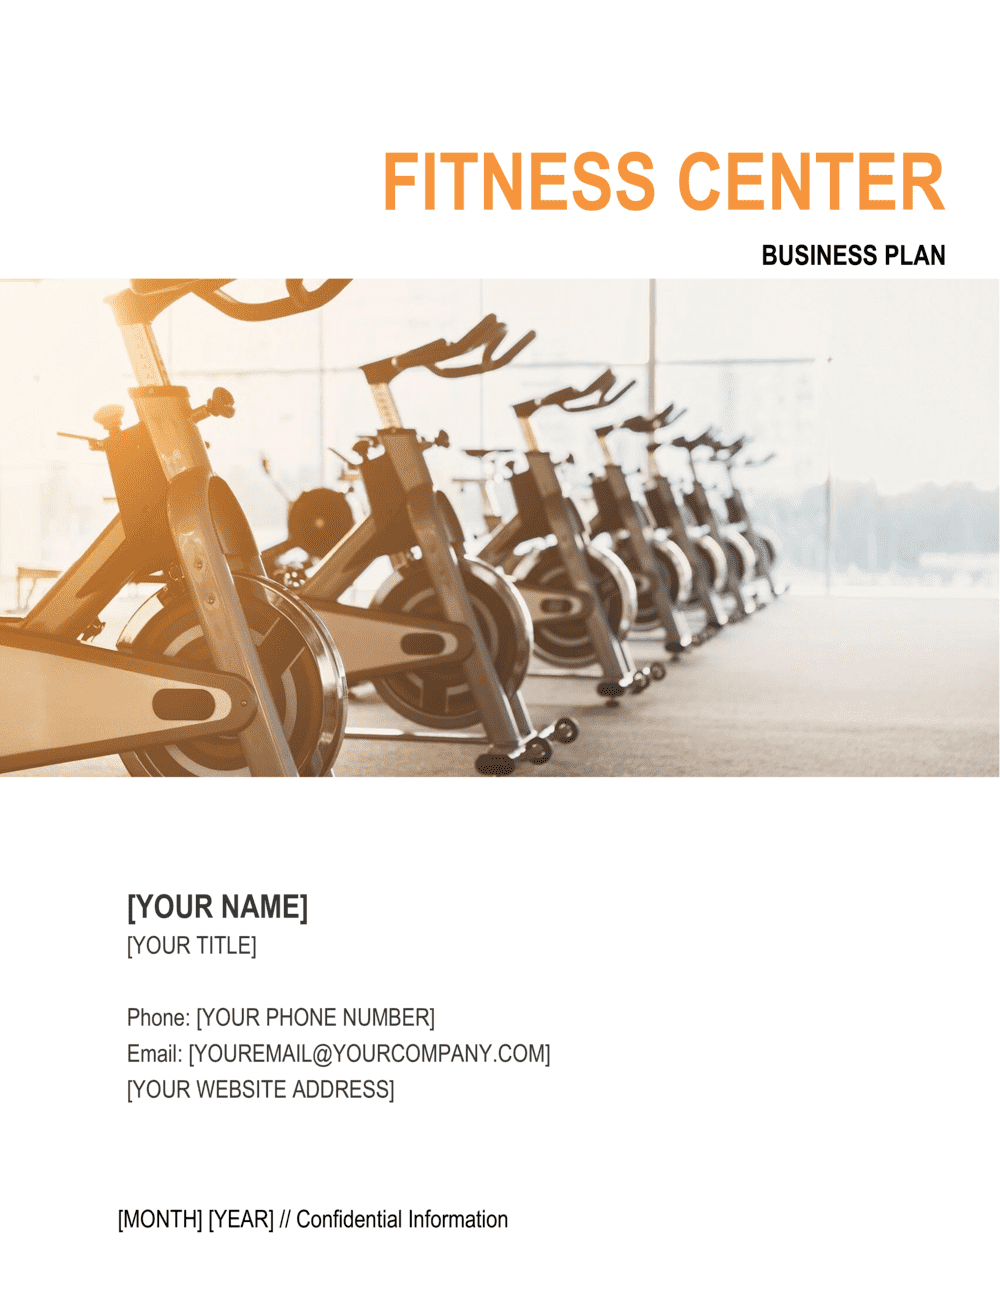 Business-in-a-Box's Fitness Center Business Plan Template